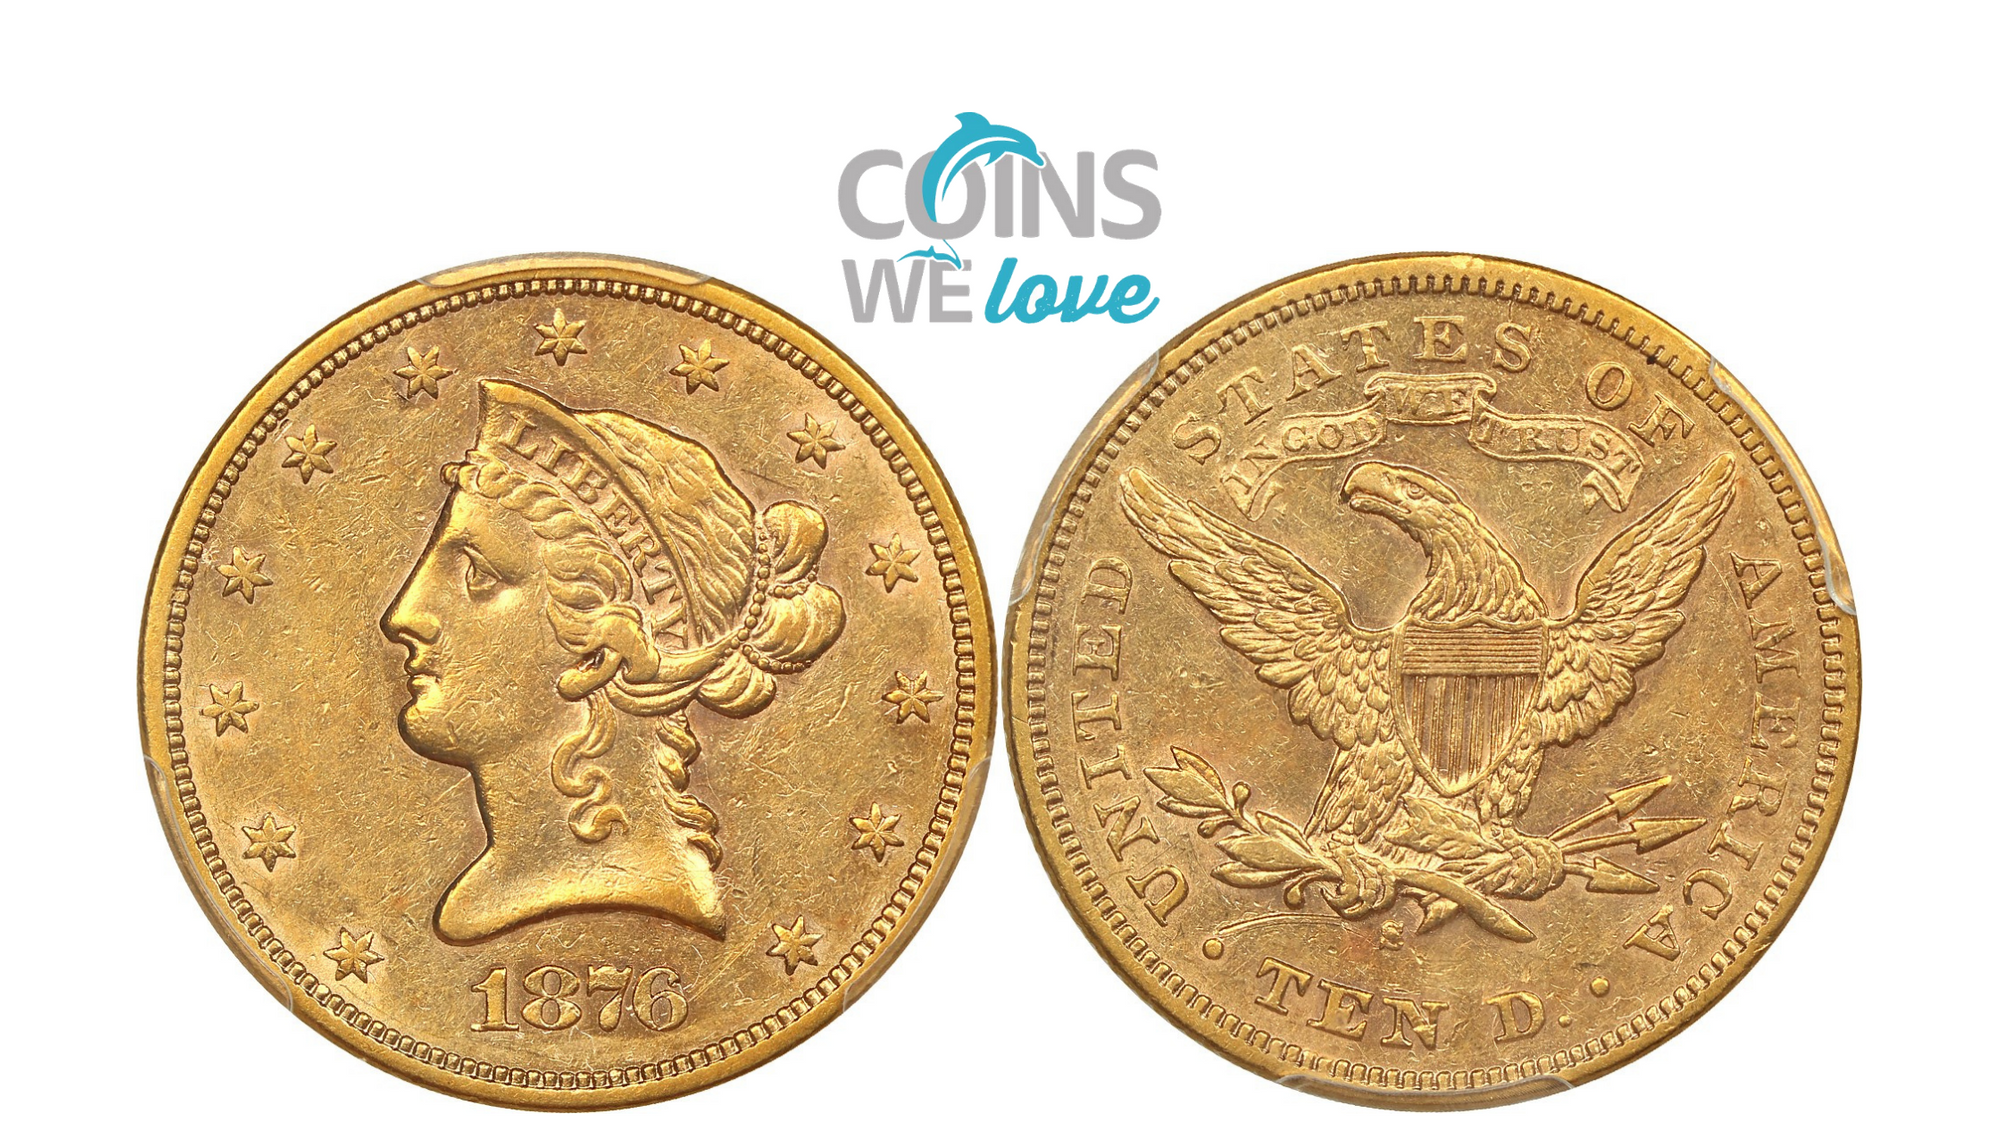 Coins We Love: A New Wave of Collectors